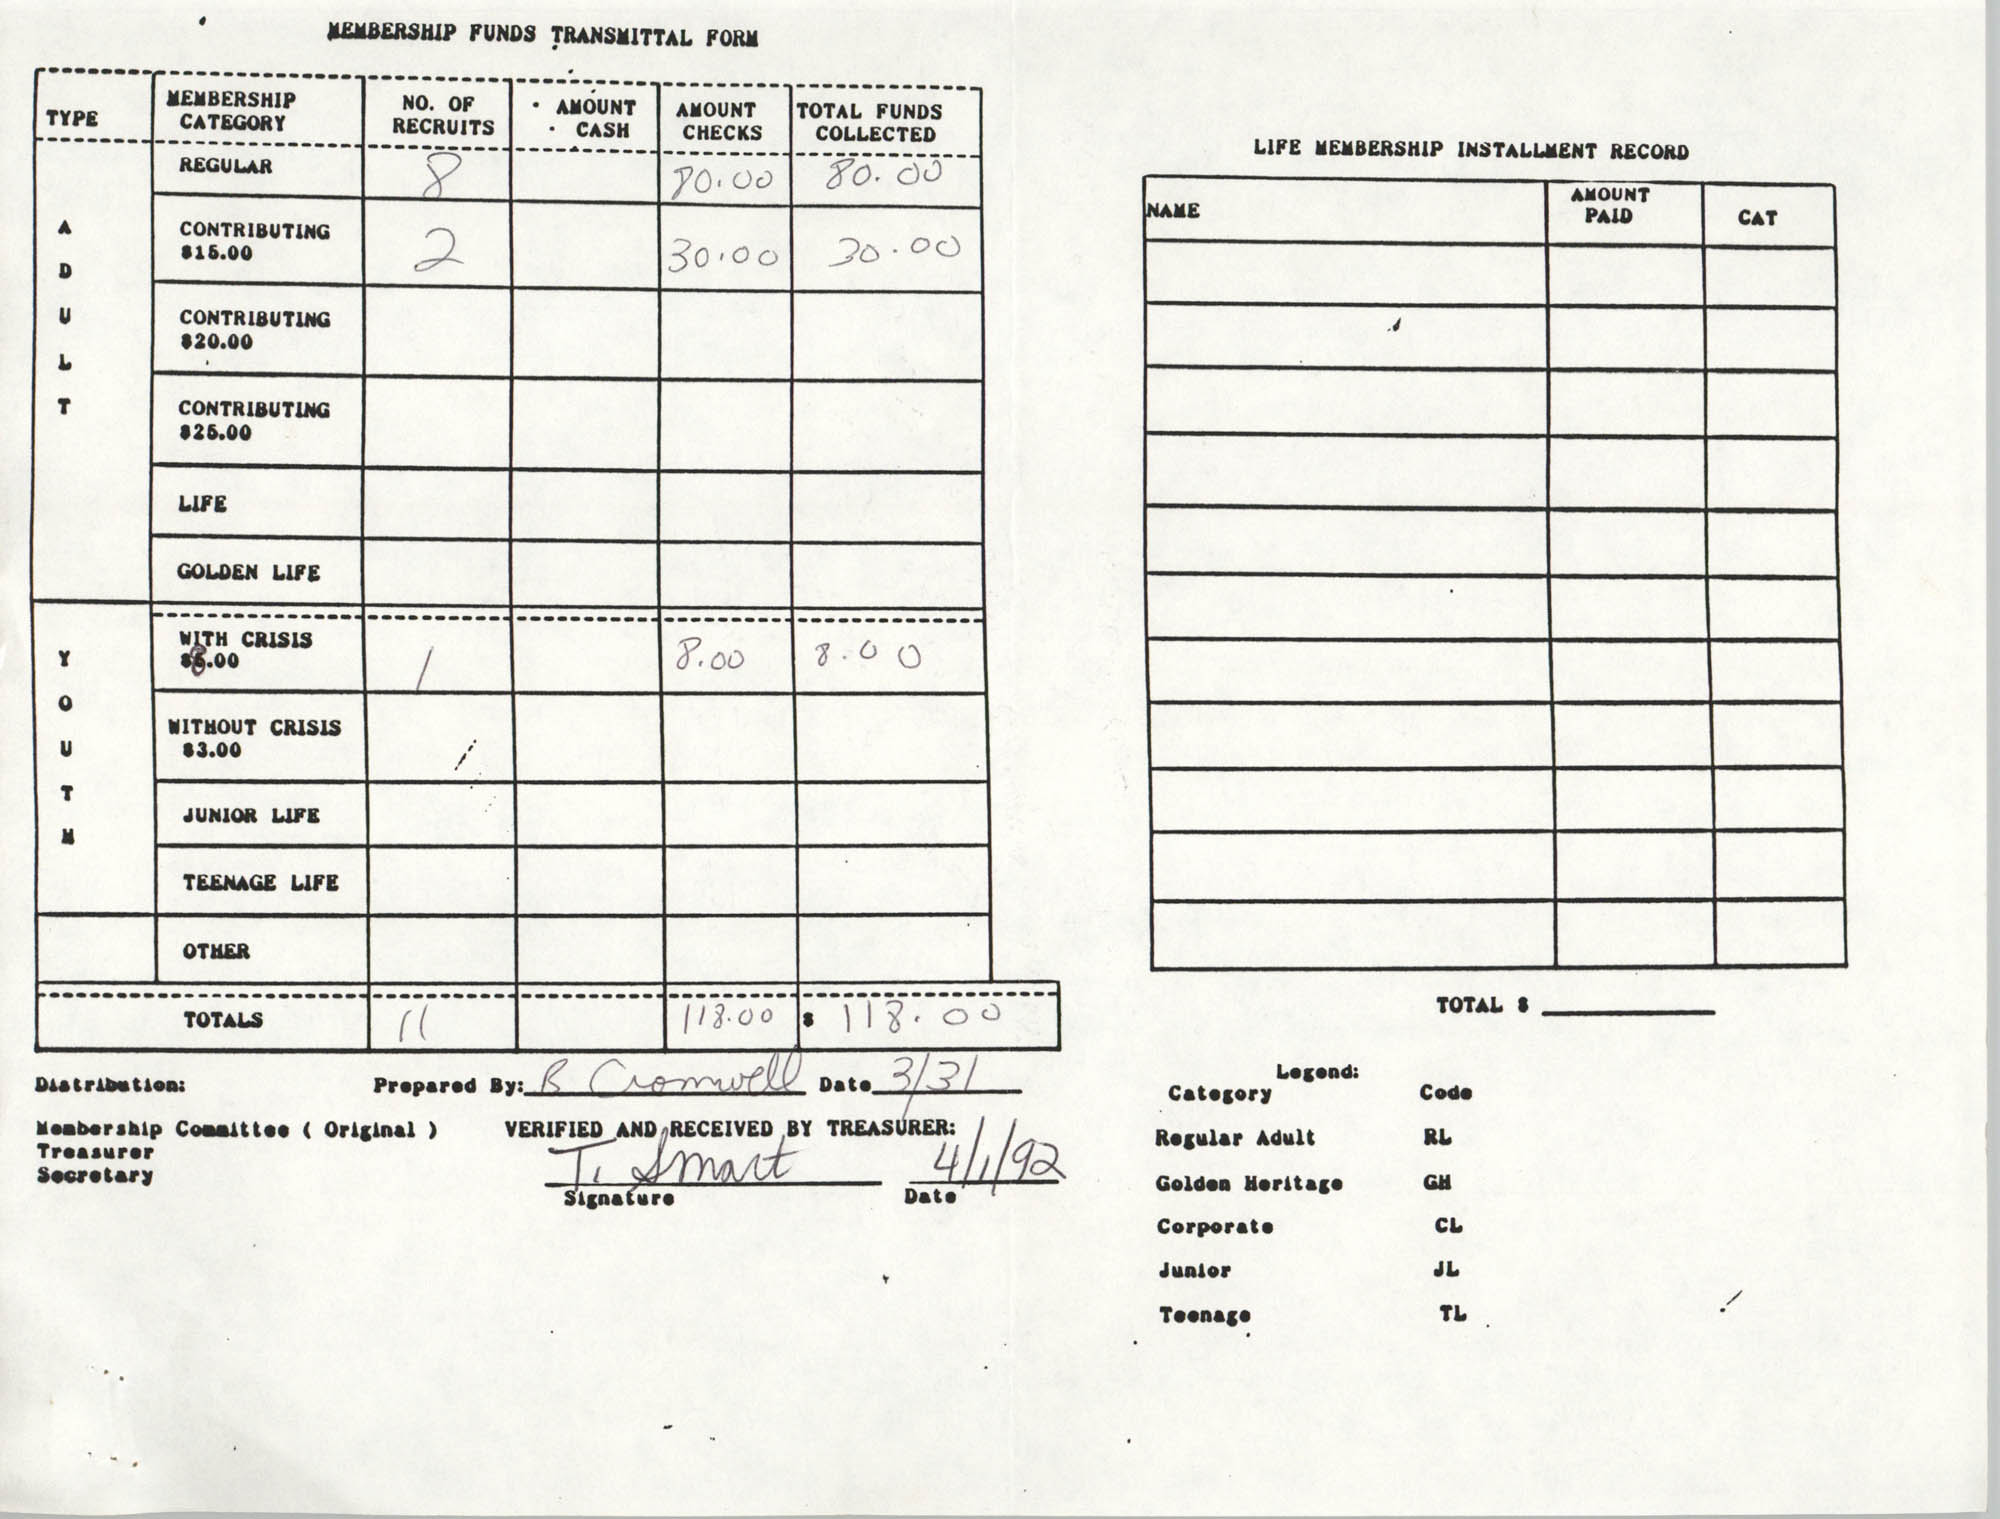 Charleston Branch of the NAACP Funds Transmittal Forms, April 1992, Page 1